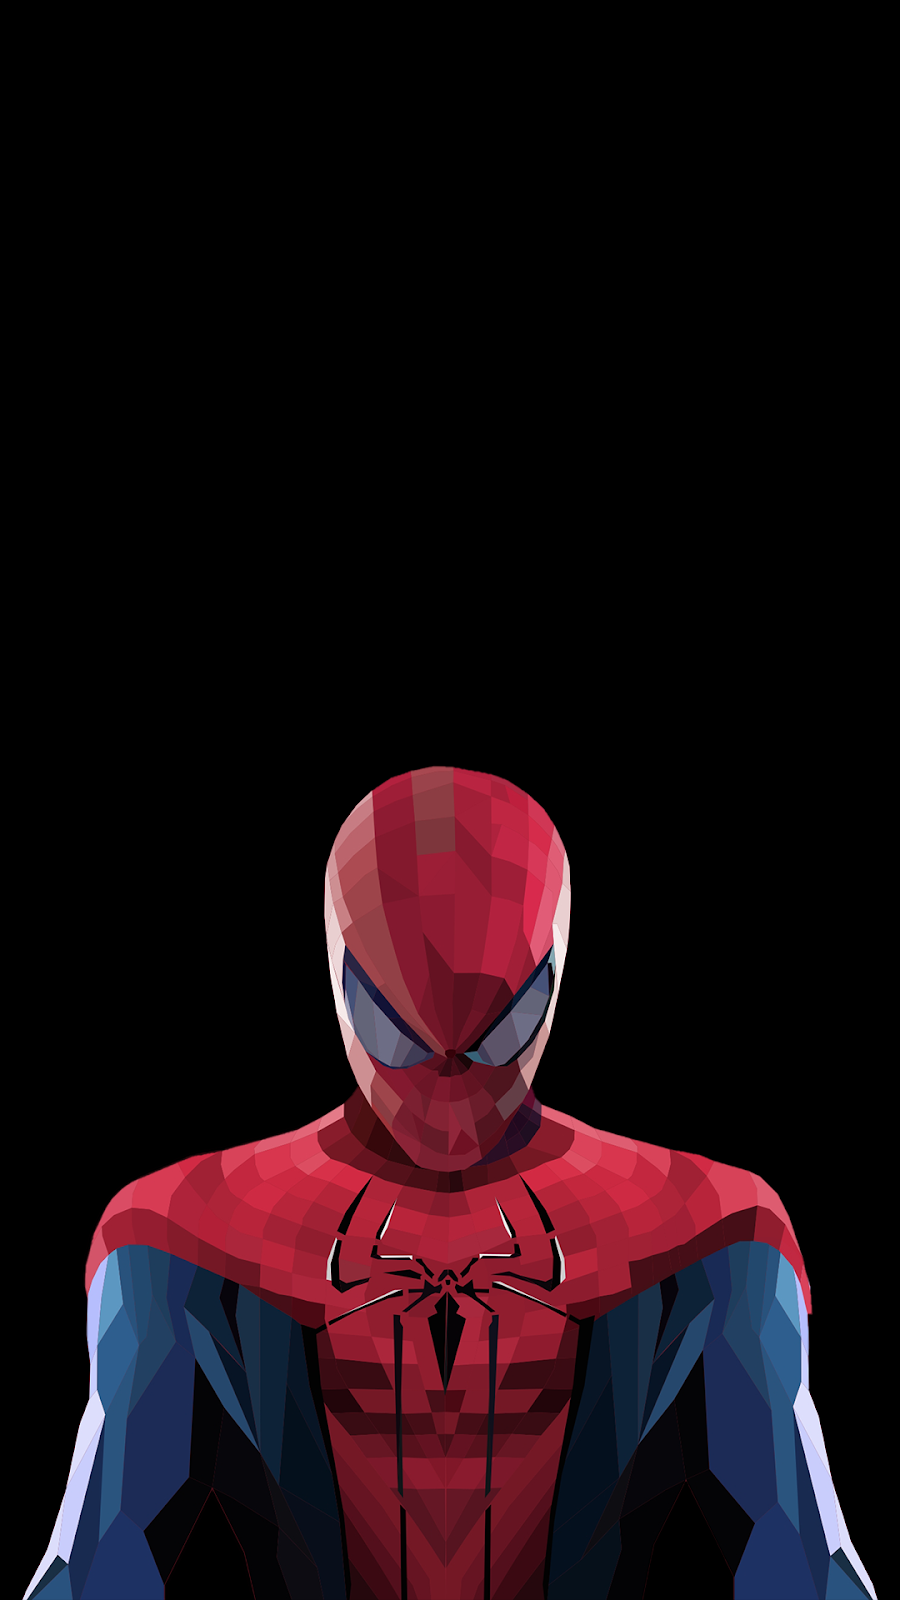 spider man mobile wallpaper